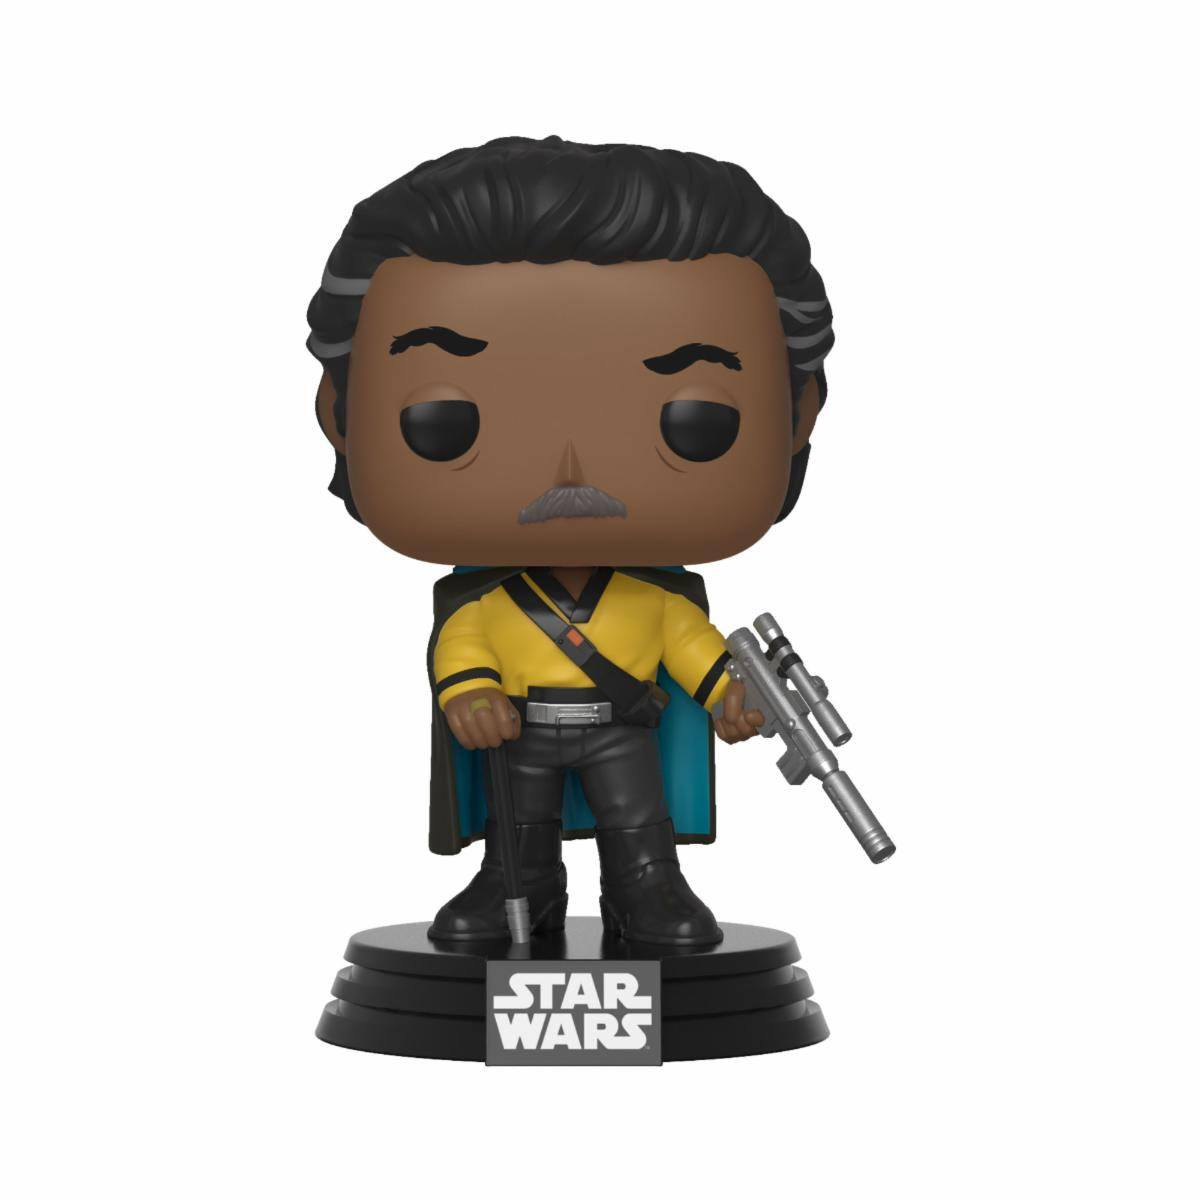 Star Wars Episode IX POP! Movies Vinyl Figure Lando Calrissian 9 cm